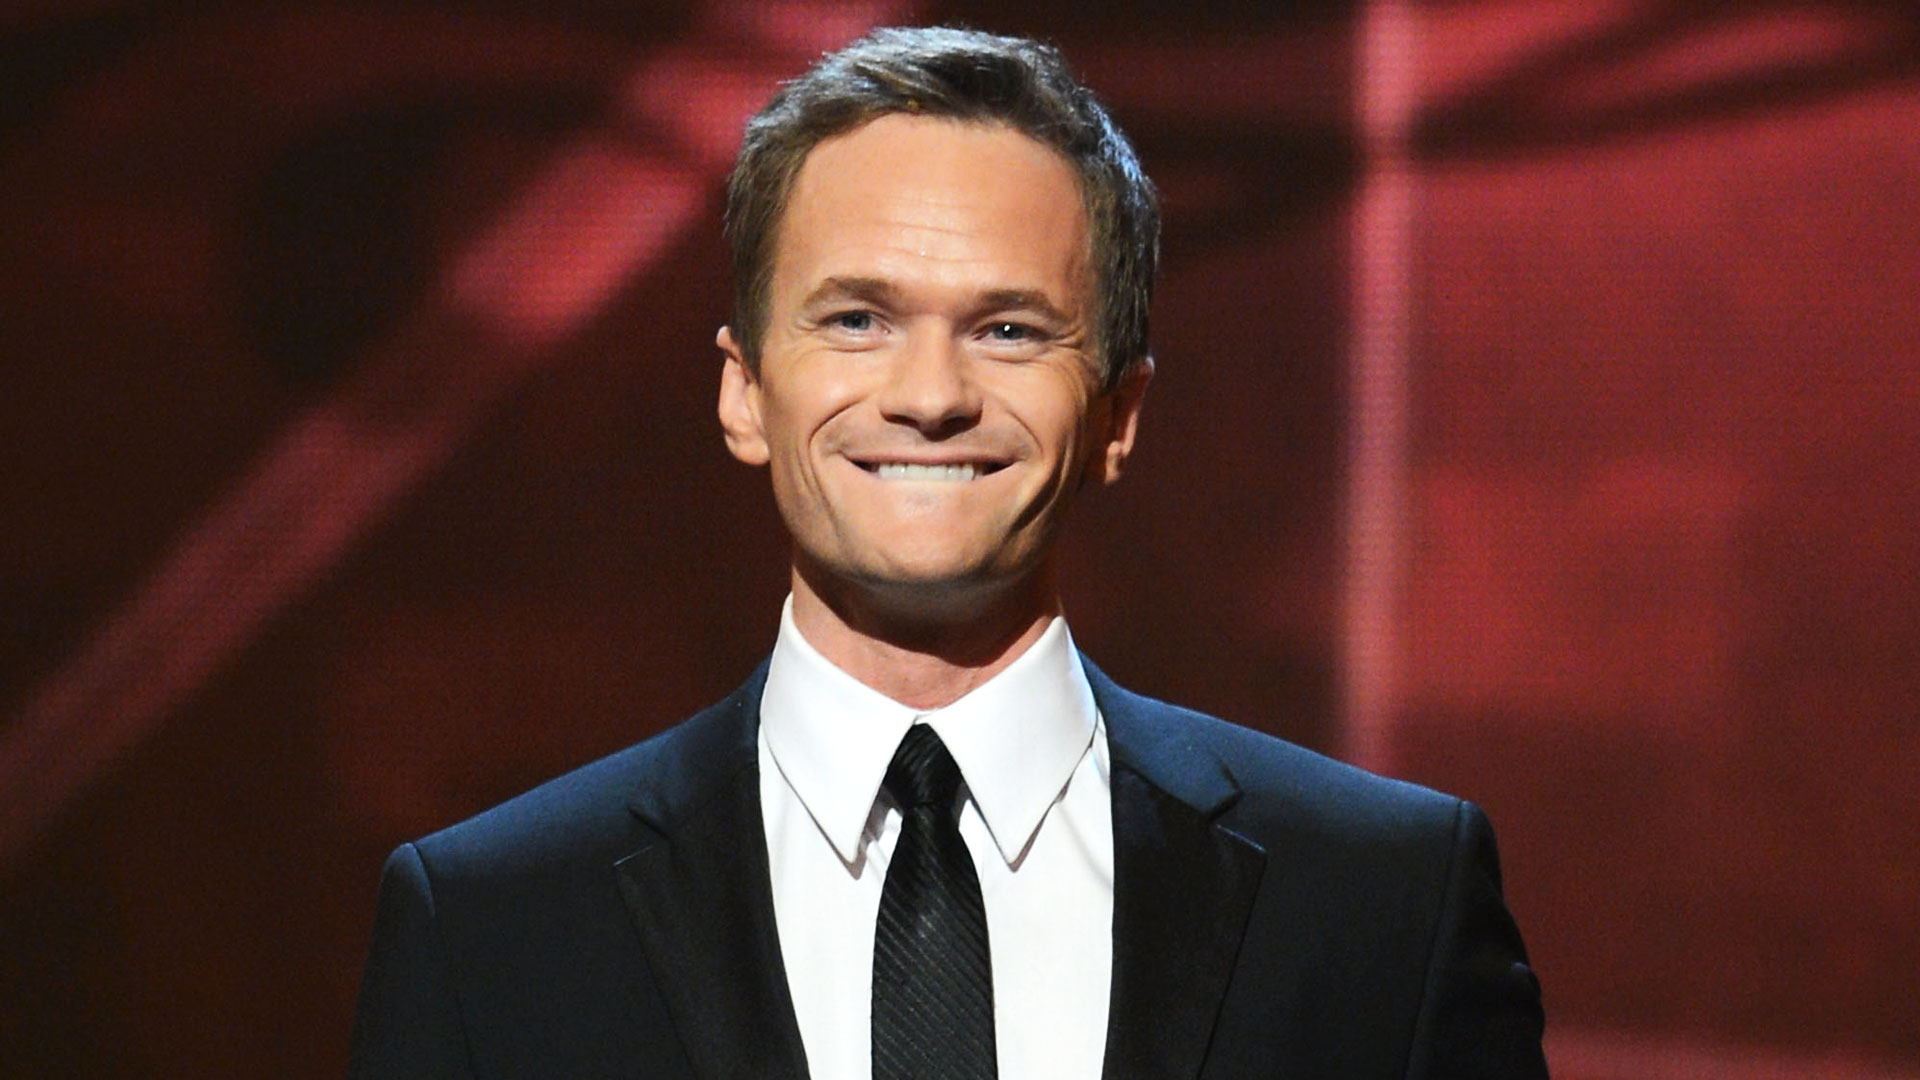 Neil Patrick Harris HQ wallpapers